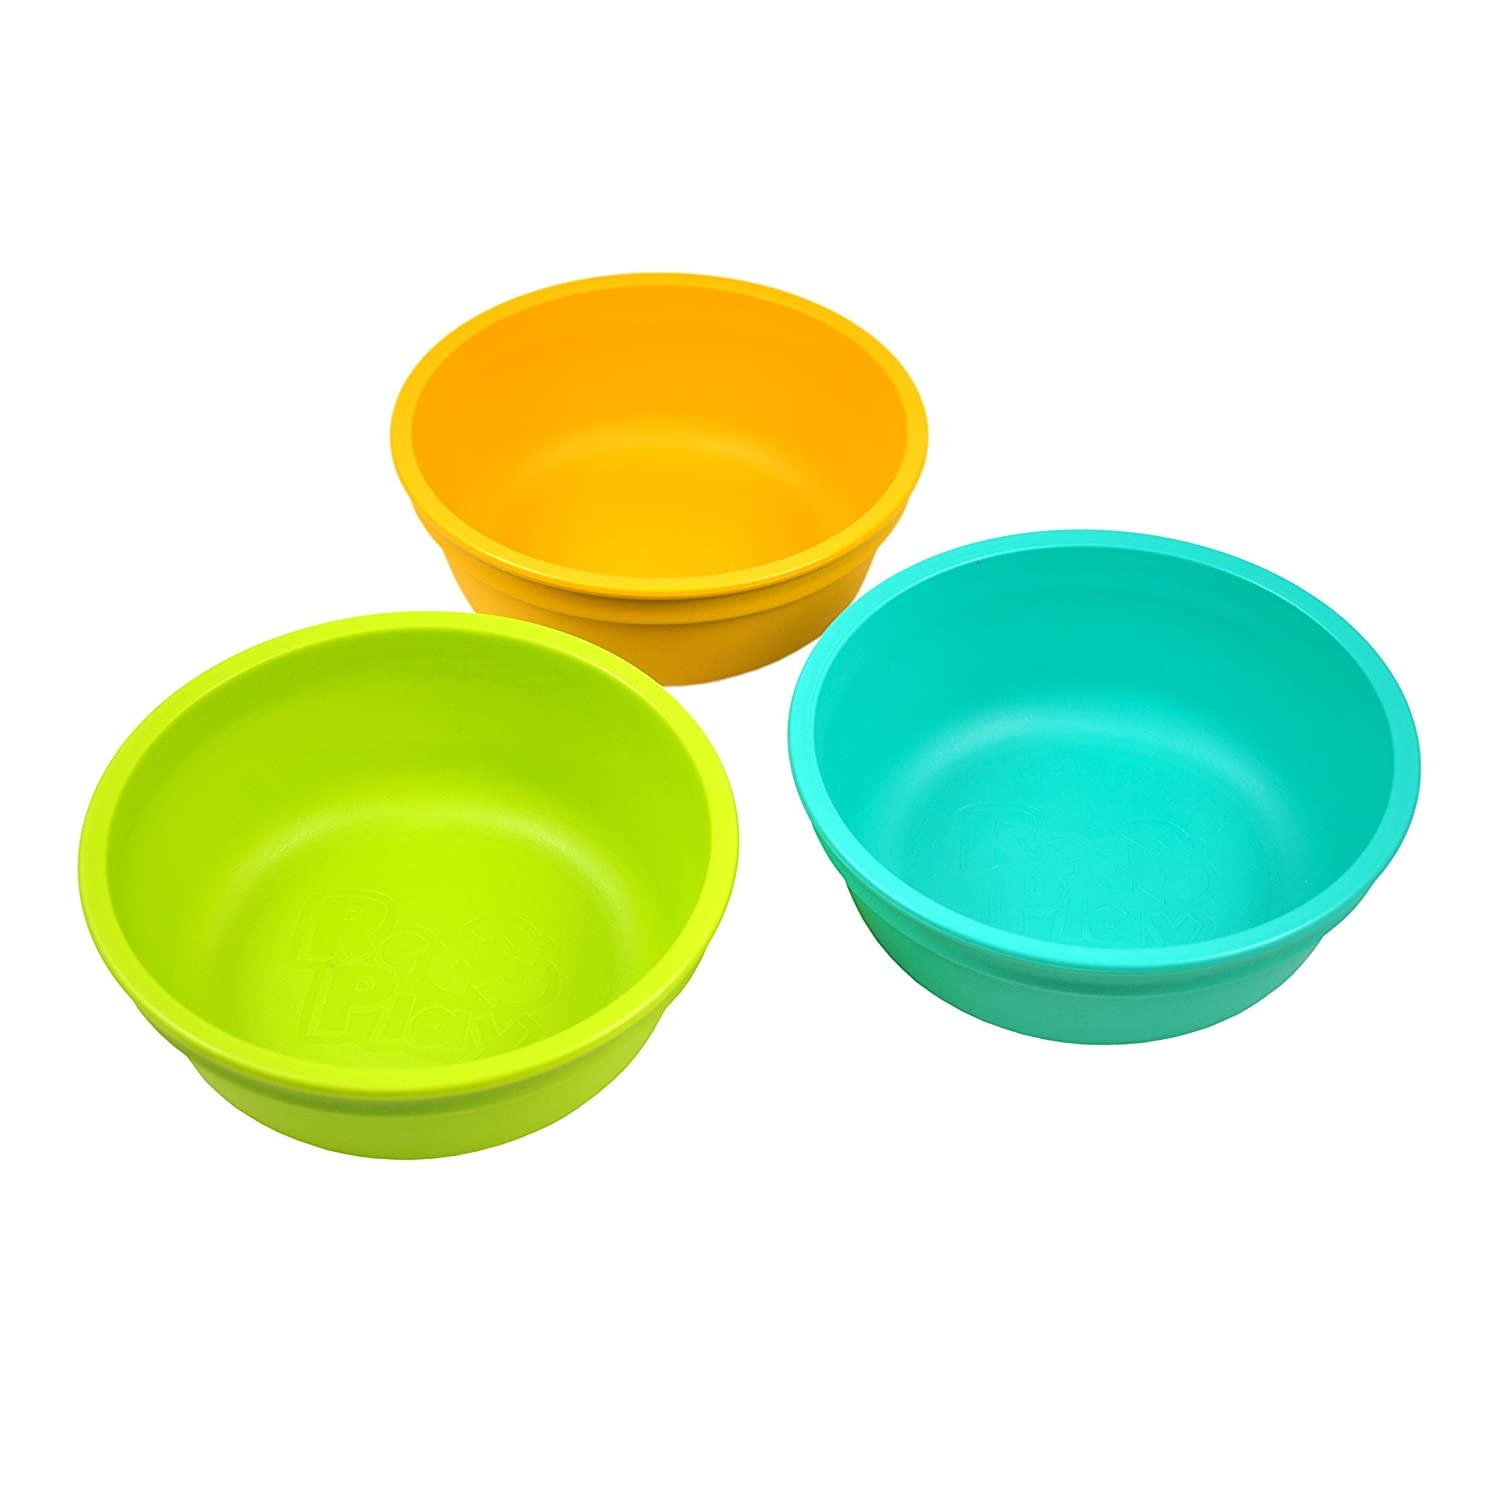 Re-Play Re-Play 12 oz Bowls 3 Pack